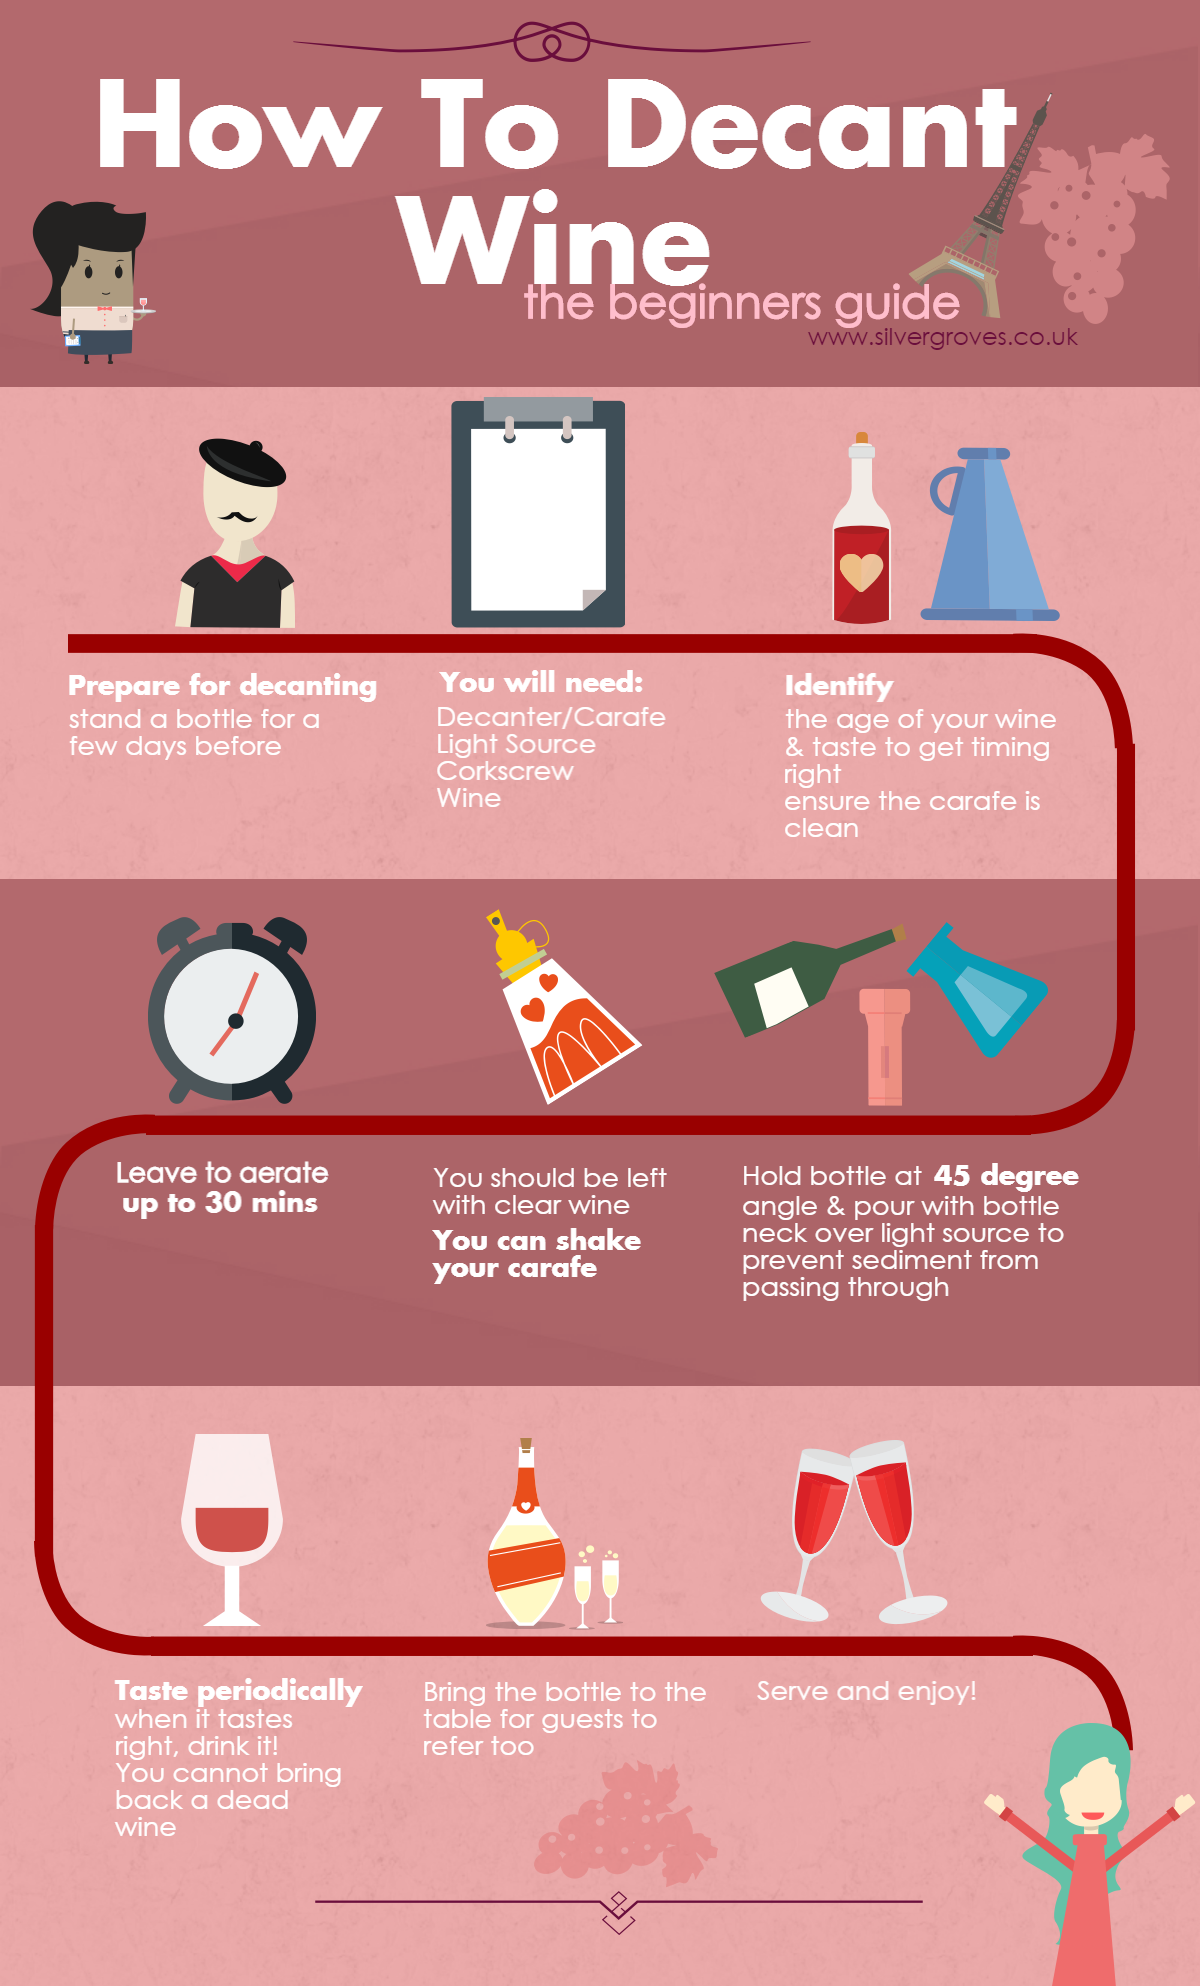 How to Decant wine The Beginners Guide